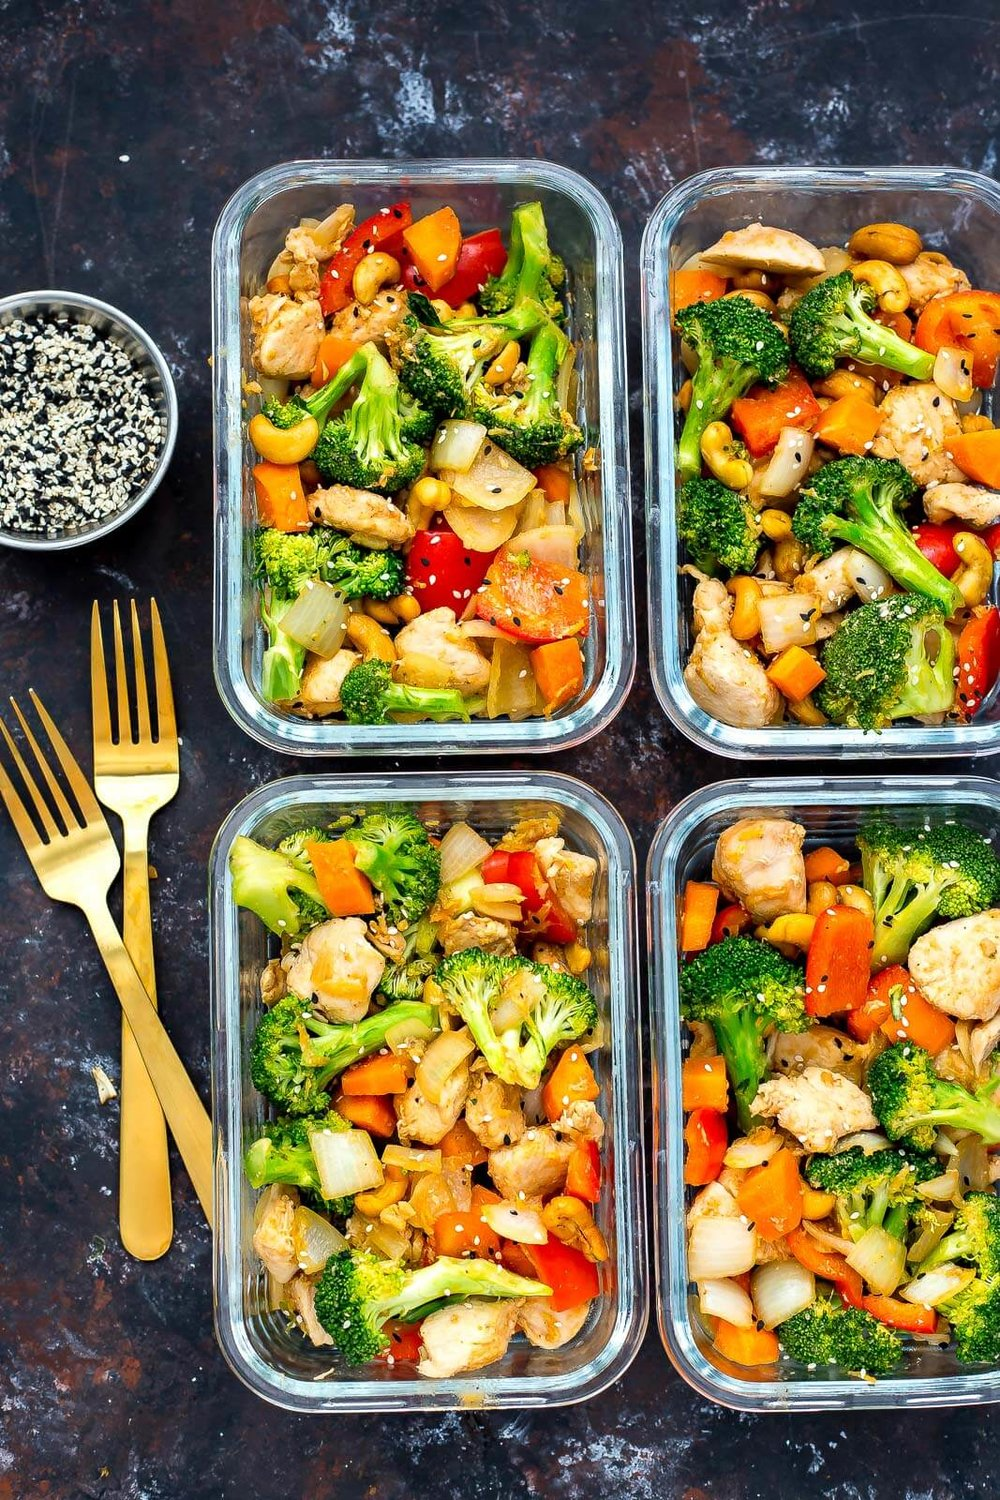 Day 14 - Preparing your meals in advance can be a healthy-eating lifesaver. It takes time and planning to eat healthy all week. And while making a week's worth of meals and snacks can help you curb any potential mid-week snack cravings, eating the same thing every day can get boring. Try separating a baking sheet into three compartments using aluminium foil and use different flavourings or marinades to cook a variety of proteins or veggies at the same time. What do you think is the best low-glycemic side dish?